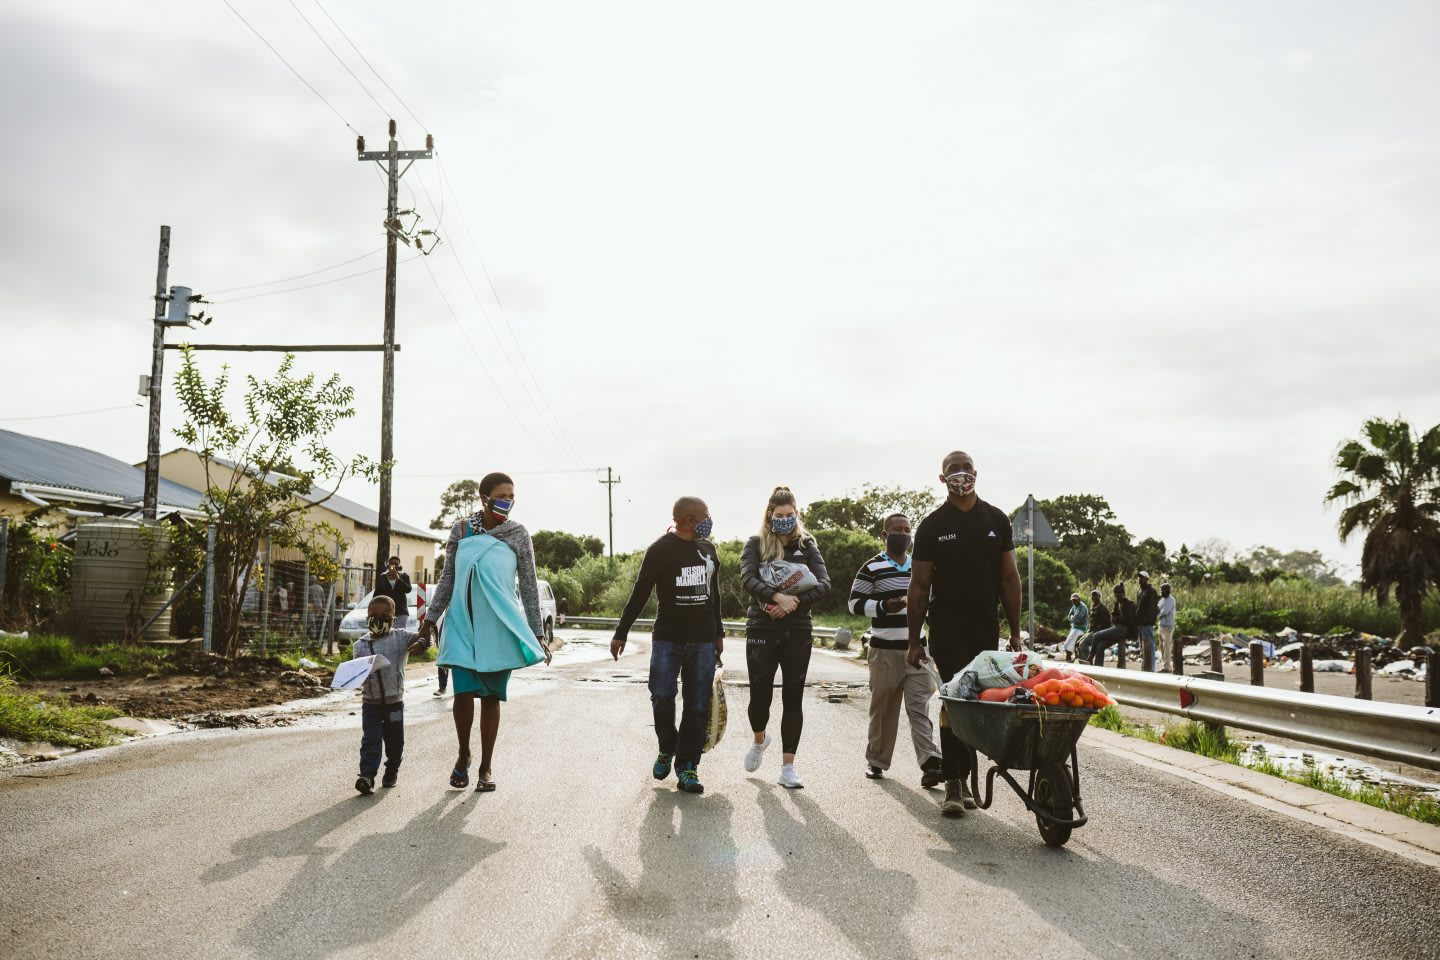 Volunteers from the Kolisi Foundation bring supplies to communities in South Africa during coronavirus pandemic, donation, volunteering, Kolisi Foundation, South Africa